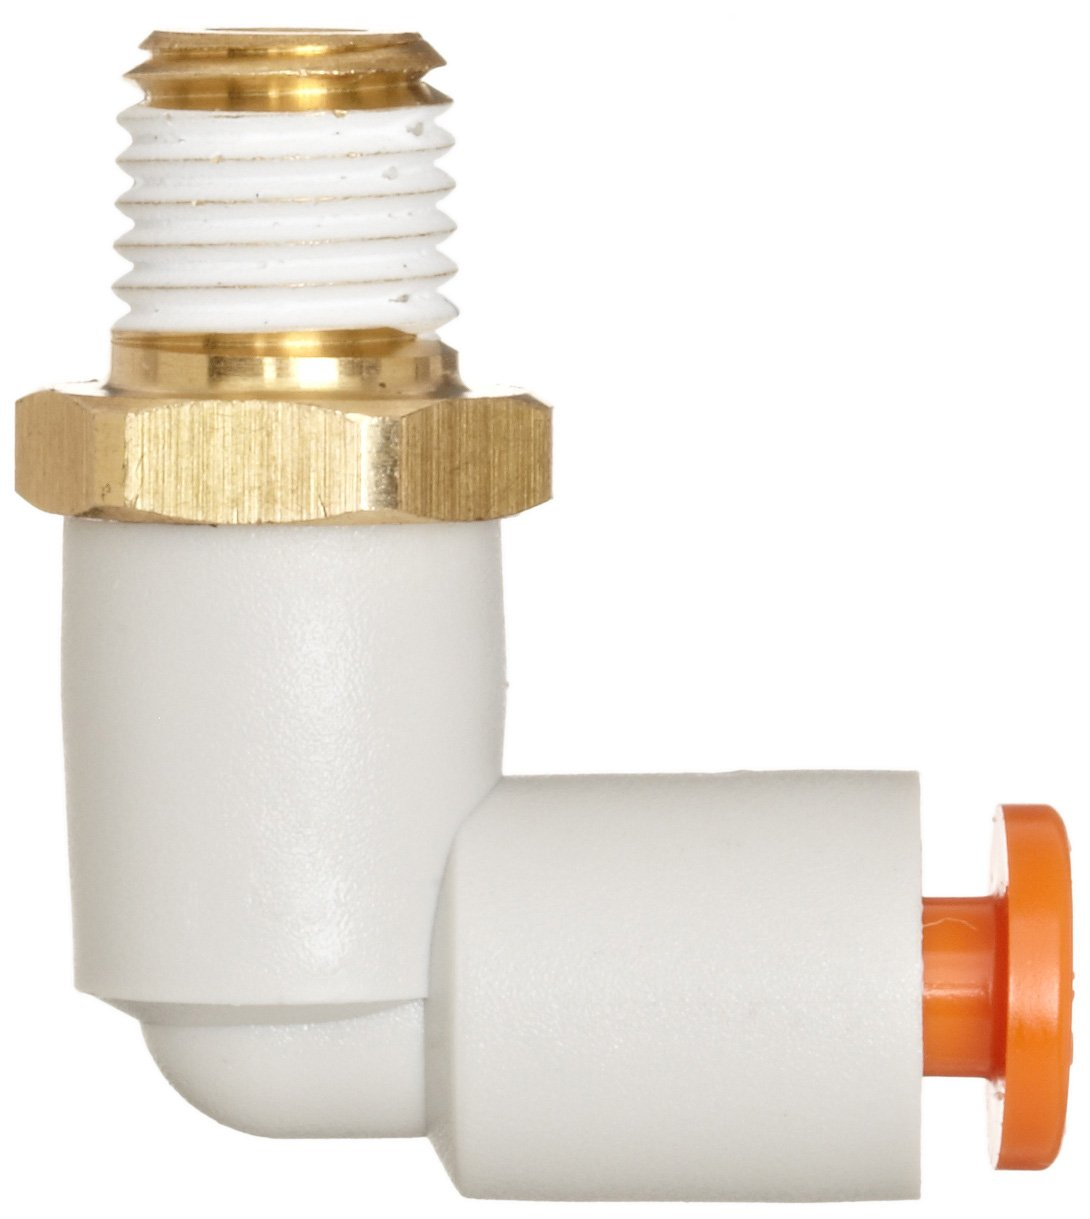 SMC KQ2L03-34AS PBT and Brass Push-to-Connect Tube Fitting with Sealant Pack of 10 90 degree Elbow 5//32 Tube OD x 1//8 NPT Male